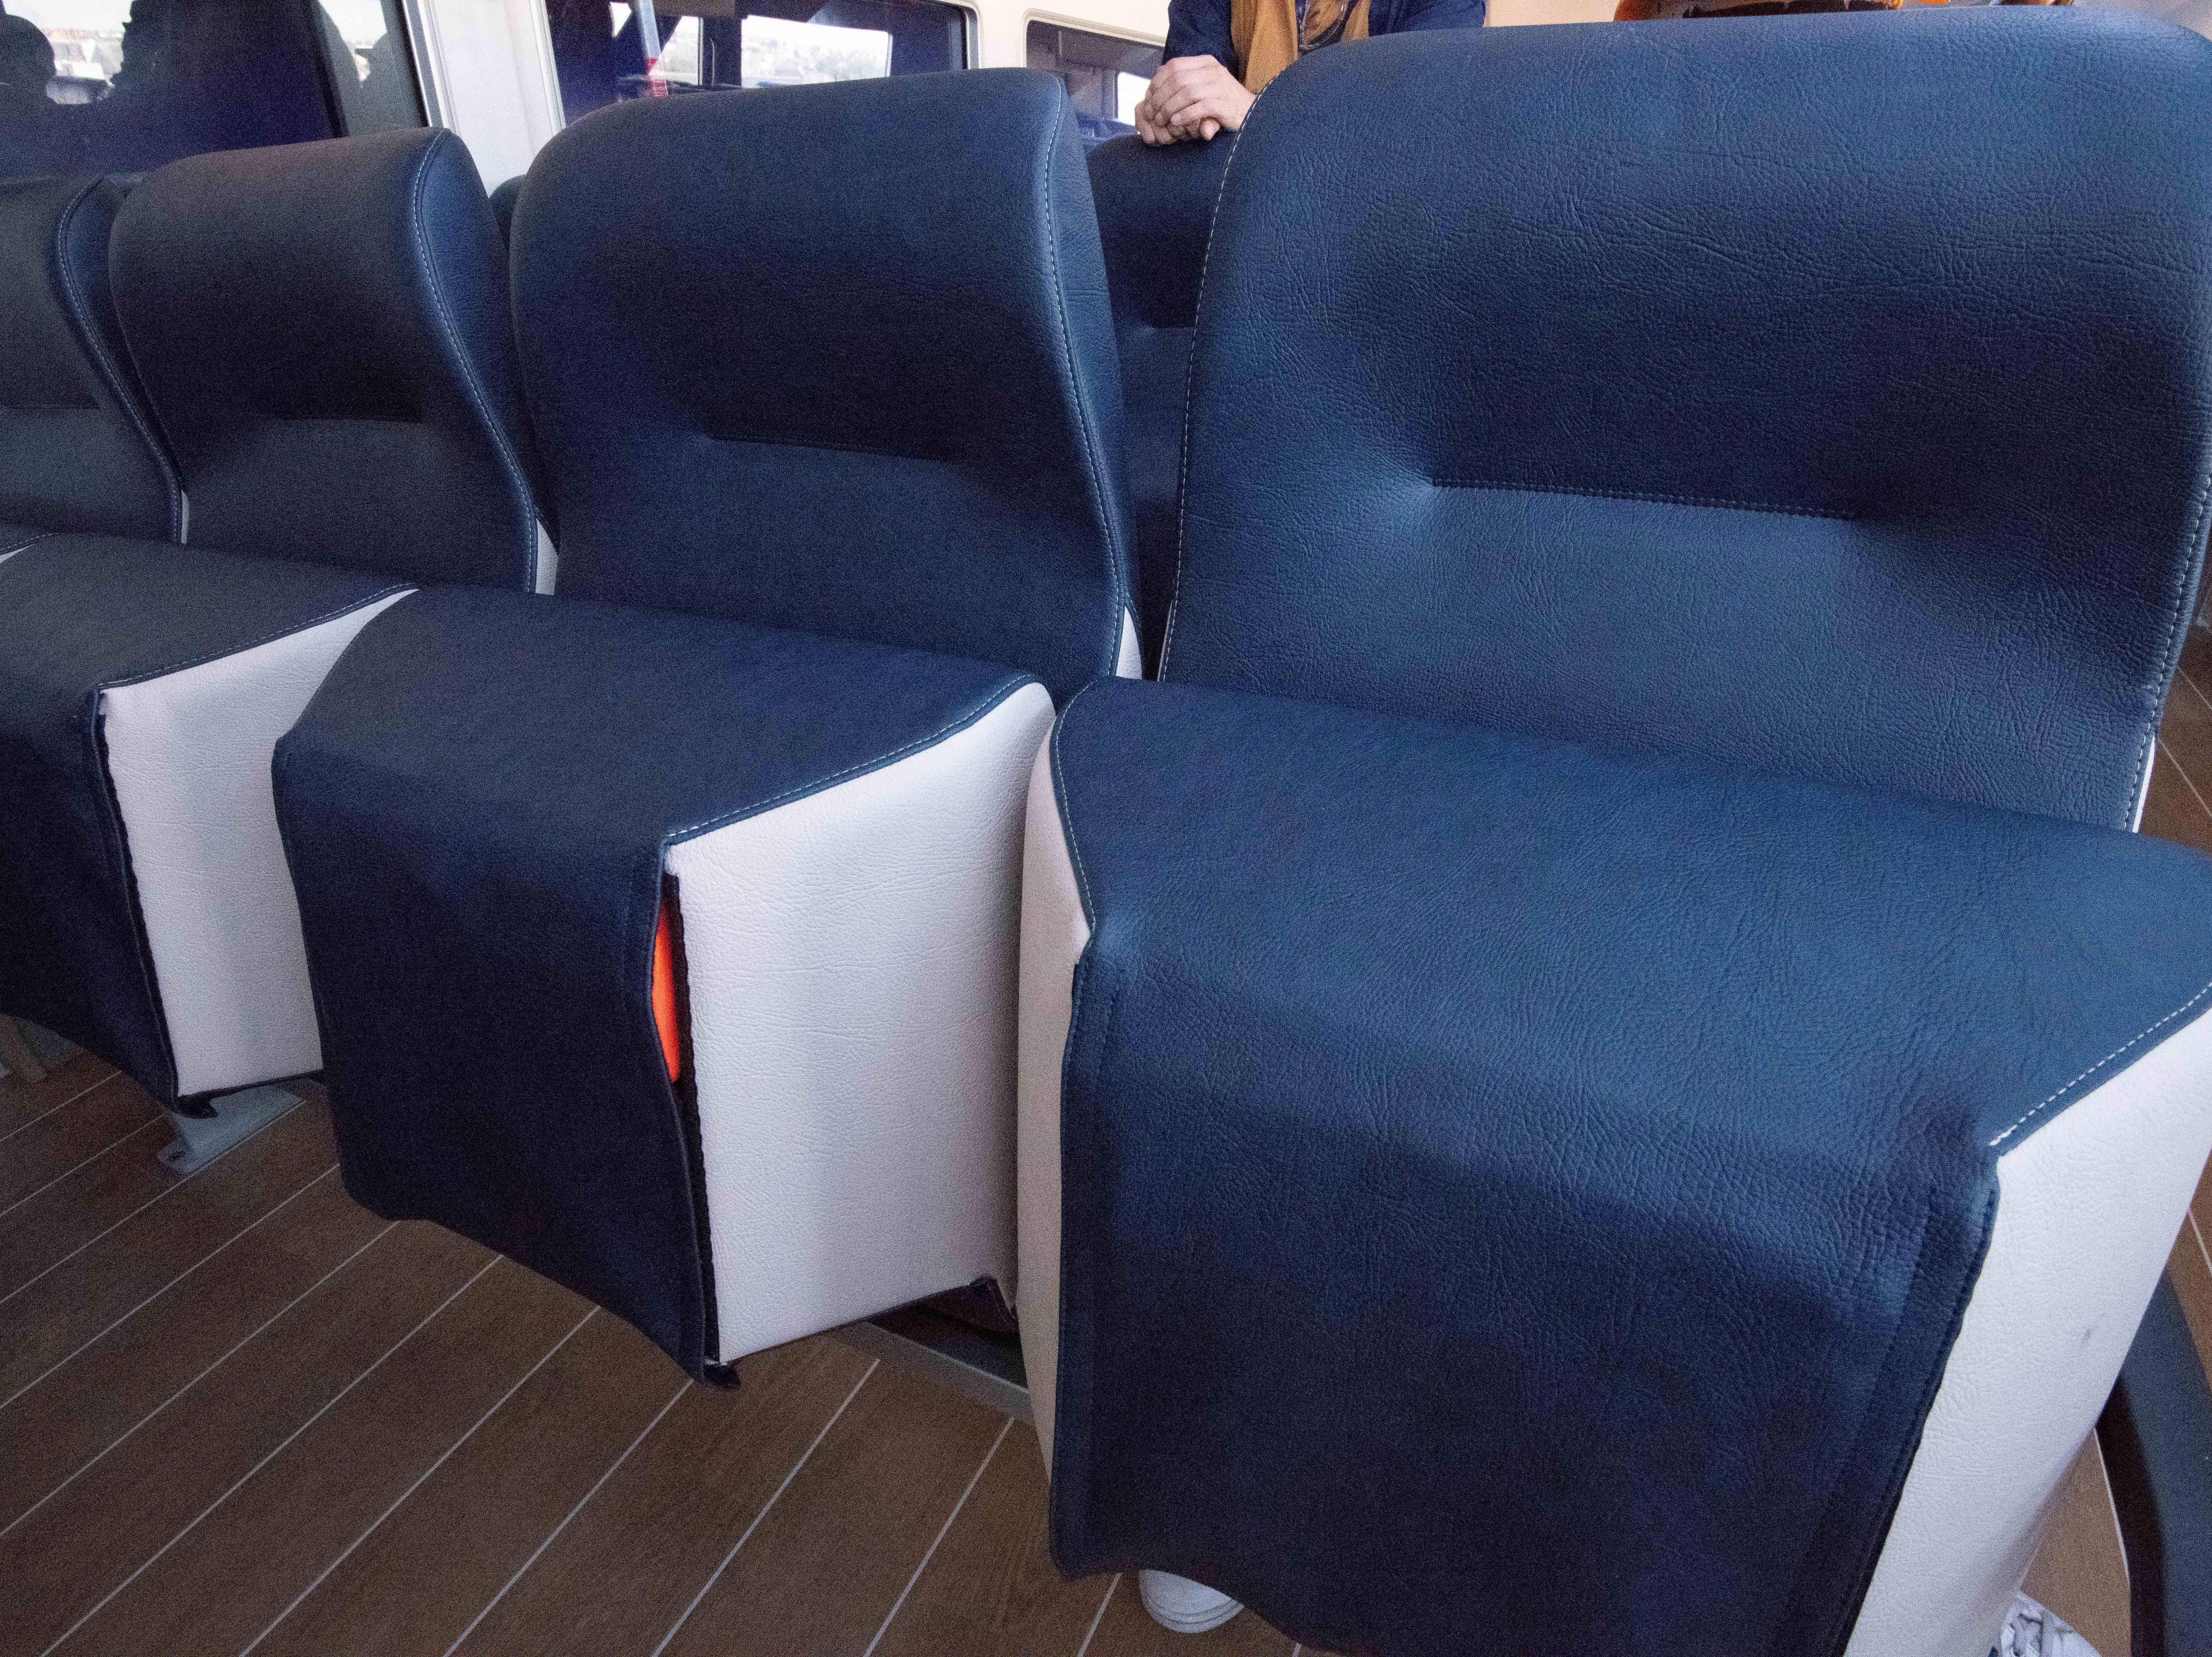 The bottoms of the cushioned seats in Celebrity Edge's tenders hide life jackets. The tenders will double as lifeboats.